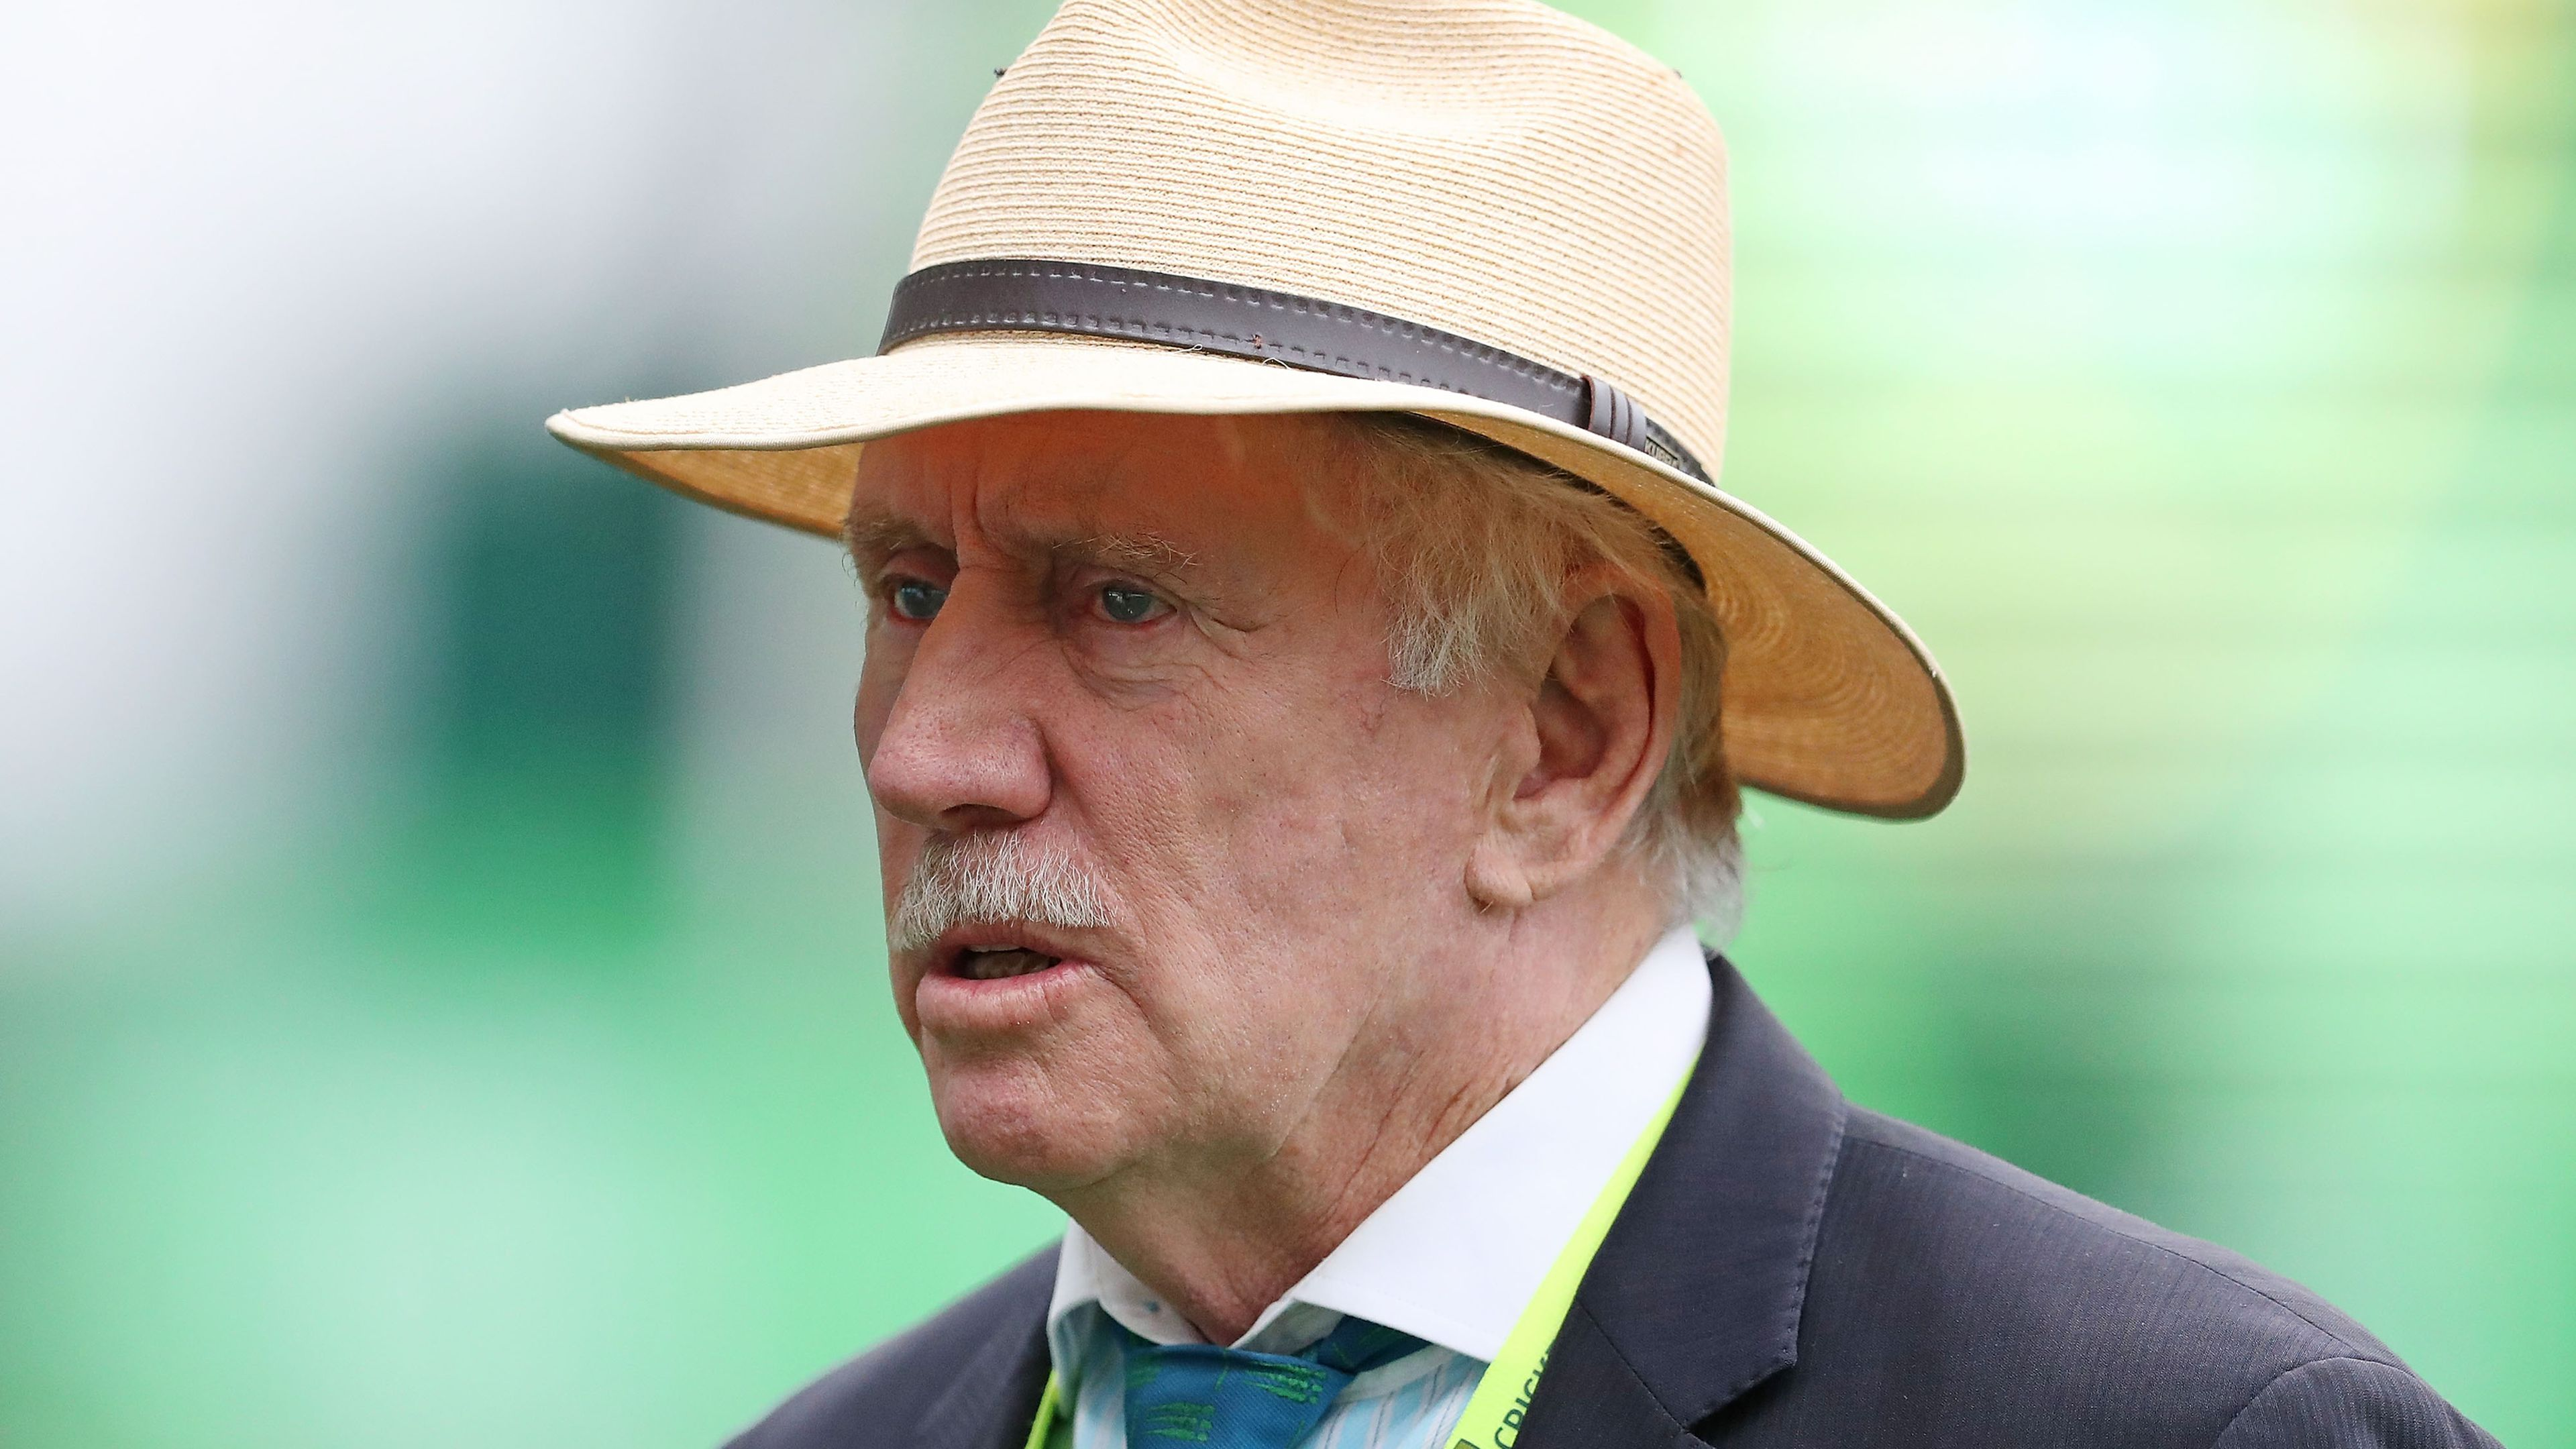 Northern Beaches resident Ian Chappell forced to leave beloved Adelaide Oval for COVID-19 test